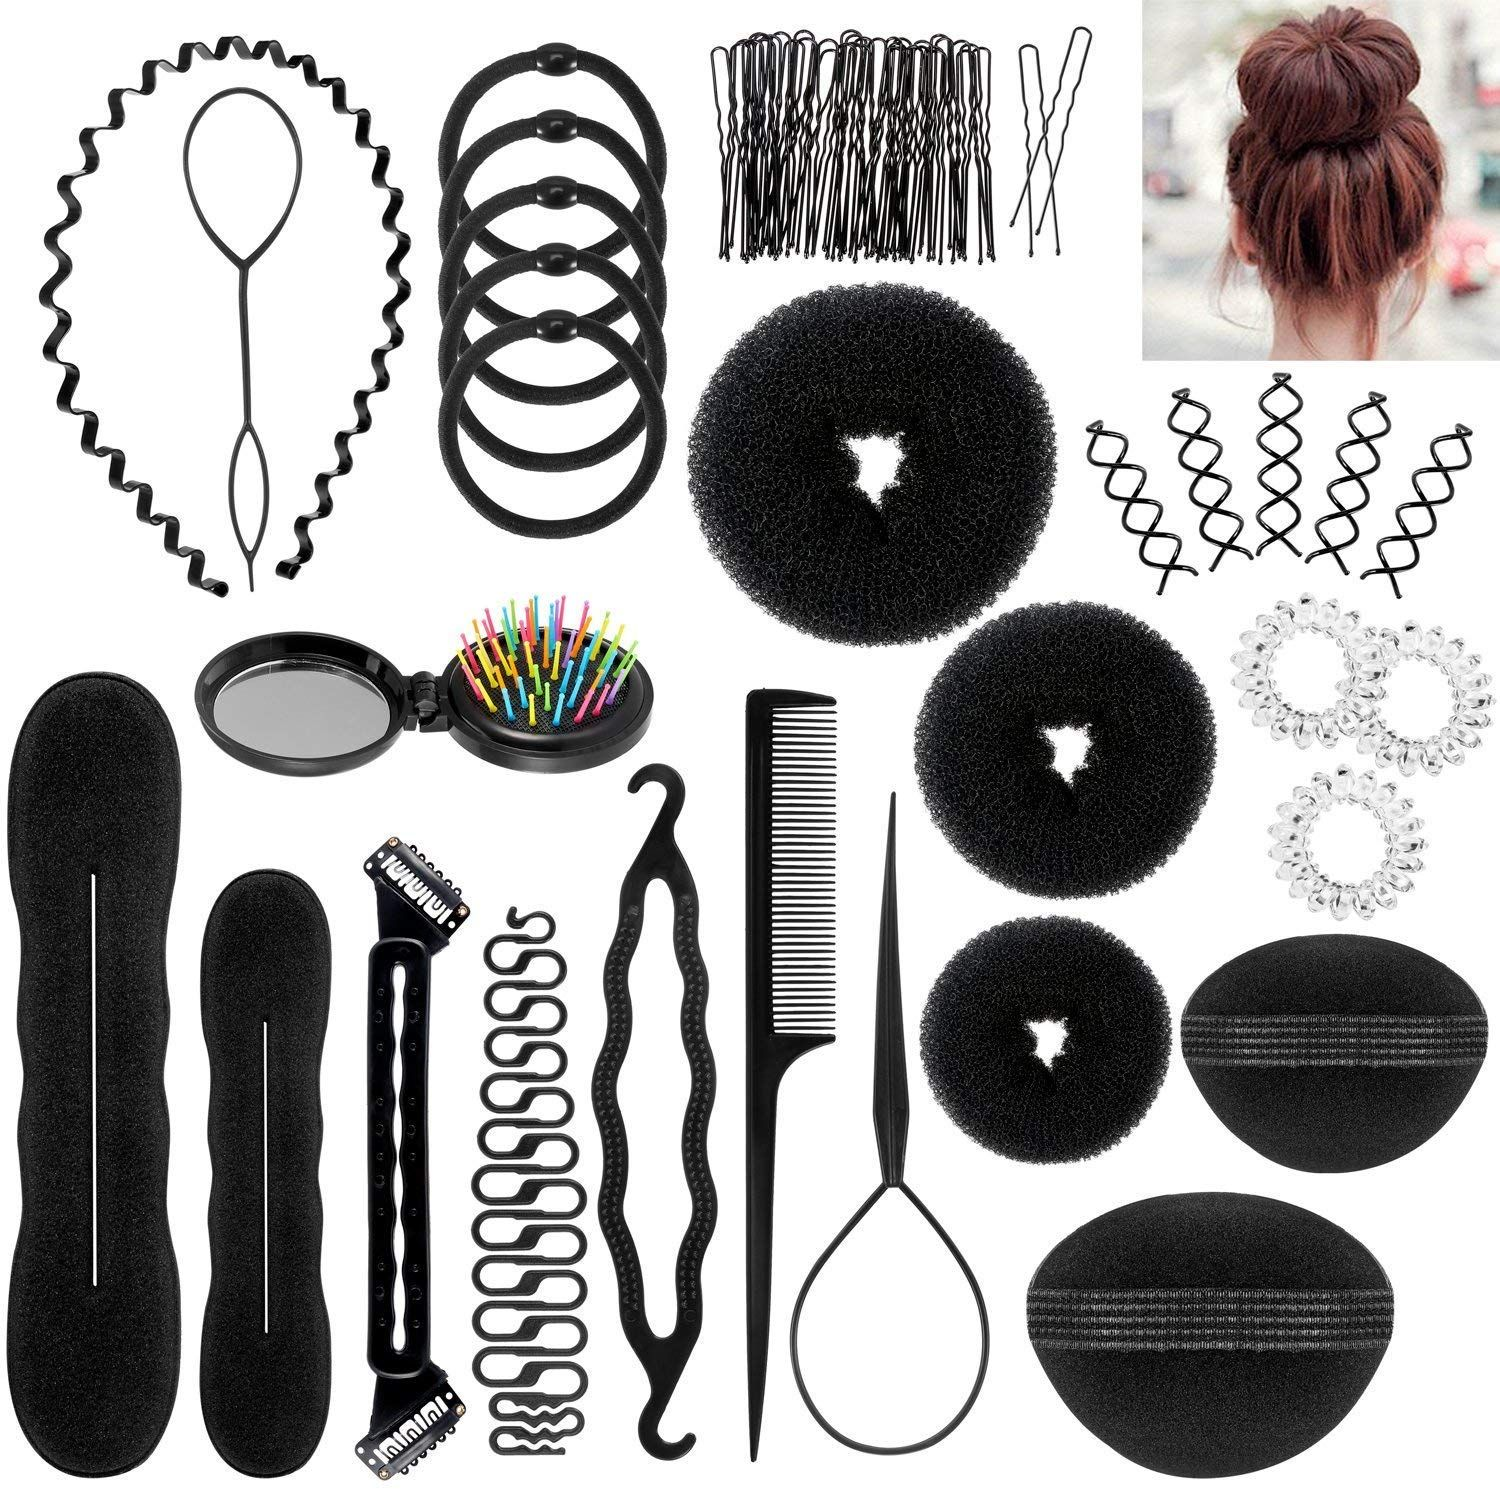 Hair Styling Accessories Set 28 Pcs Fashion Hair Design Styling Tools Kit Spiral Diy Hair A Hair Accessories Pins Diy Hair Accessories Fashion Hair Accessories